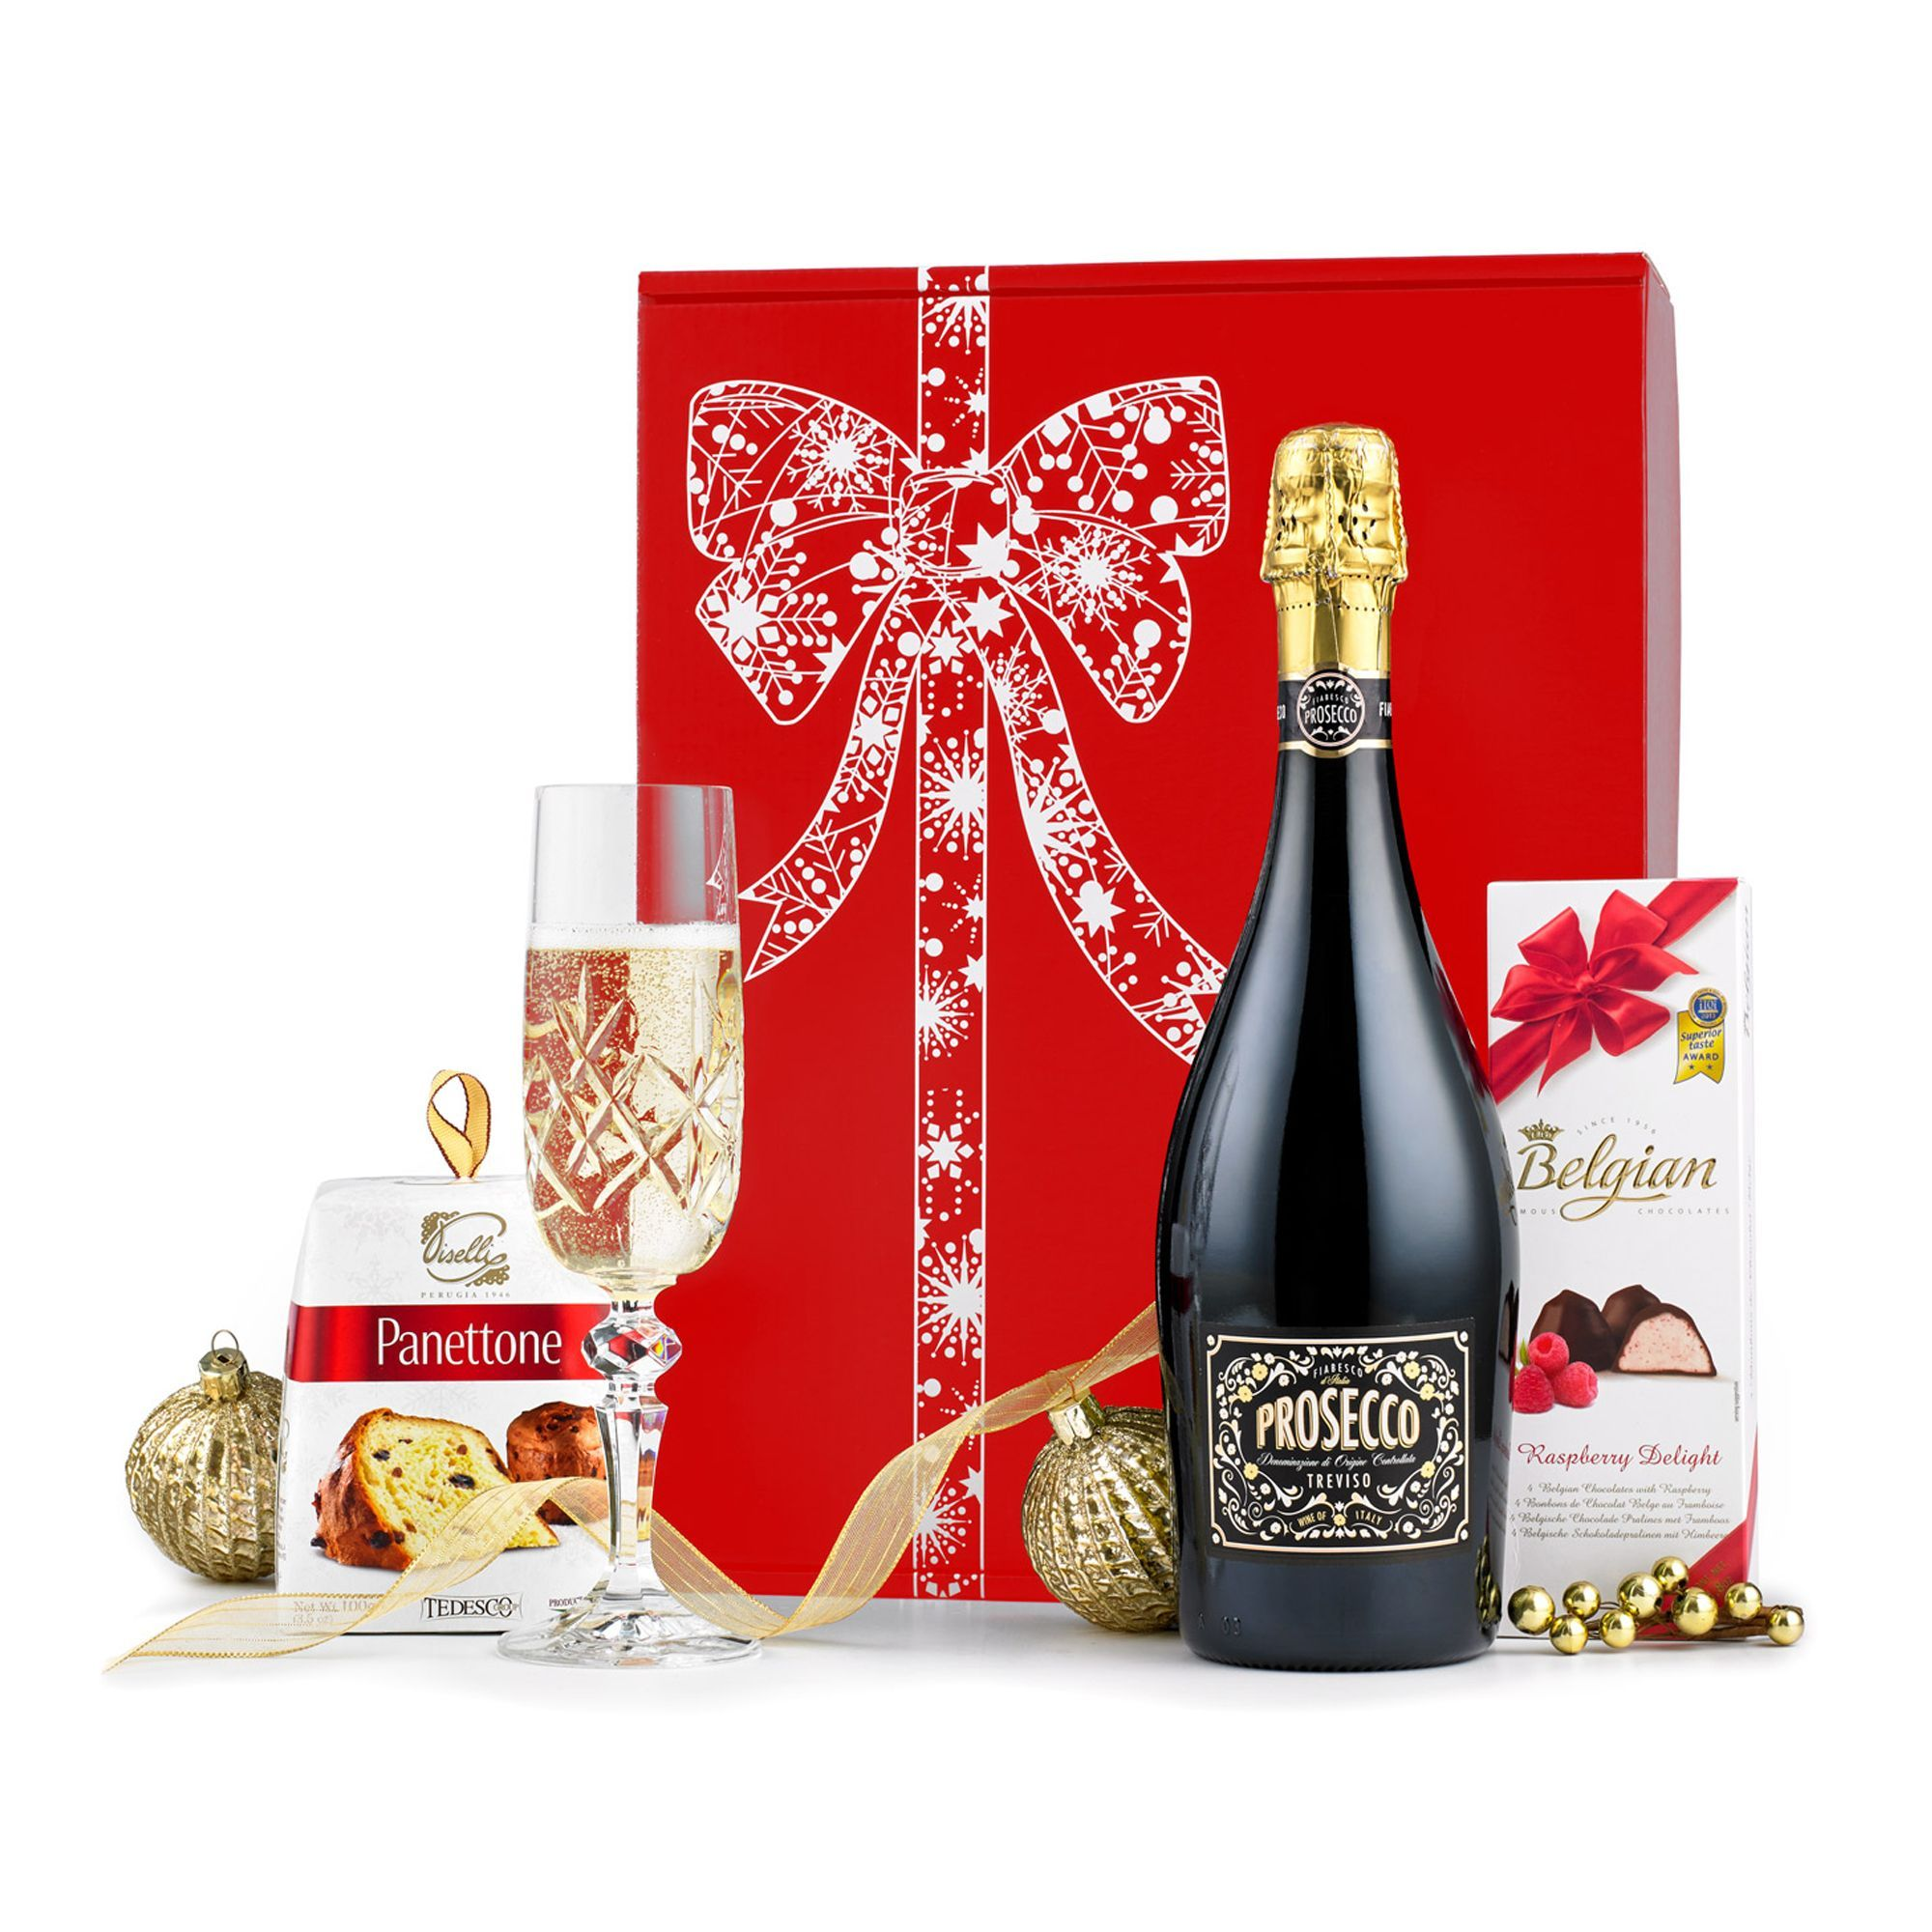 Prosecco Panettone Gift Box Gift Hampers Christmas Wishes Wish Gifts